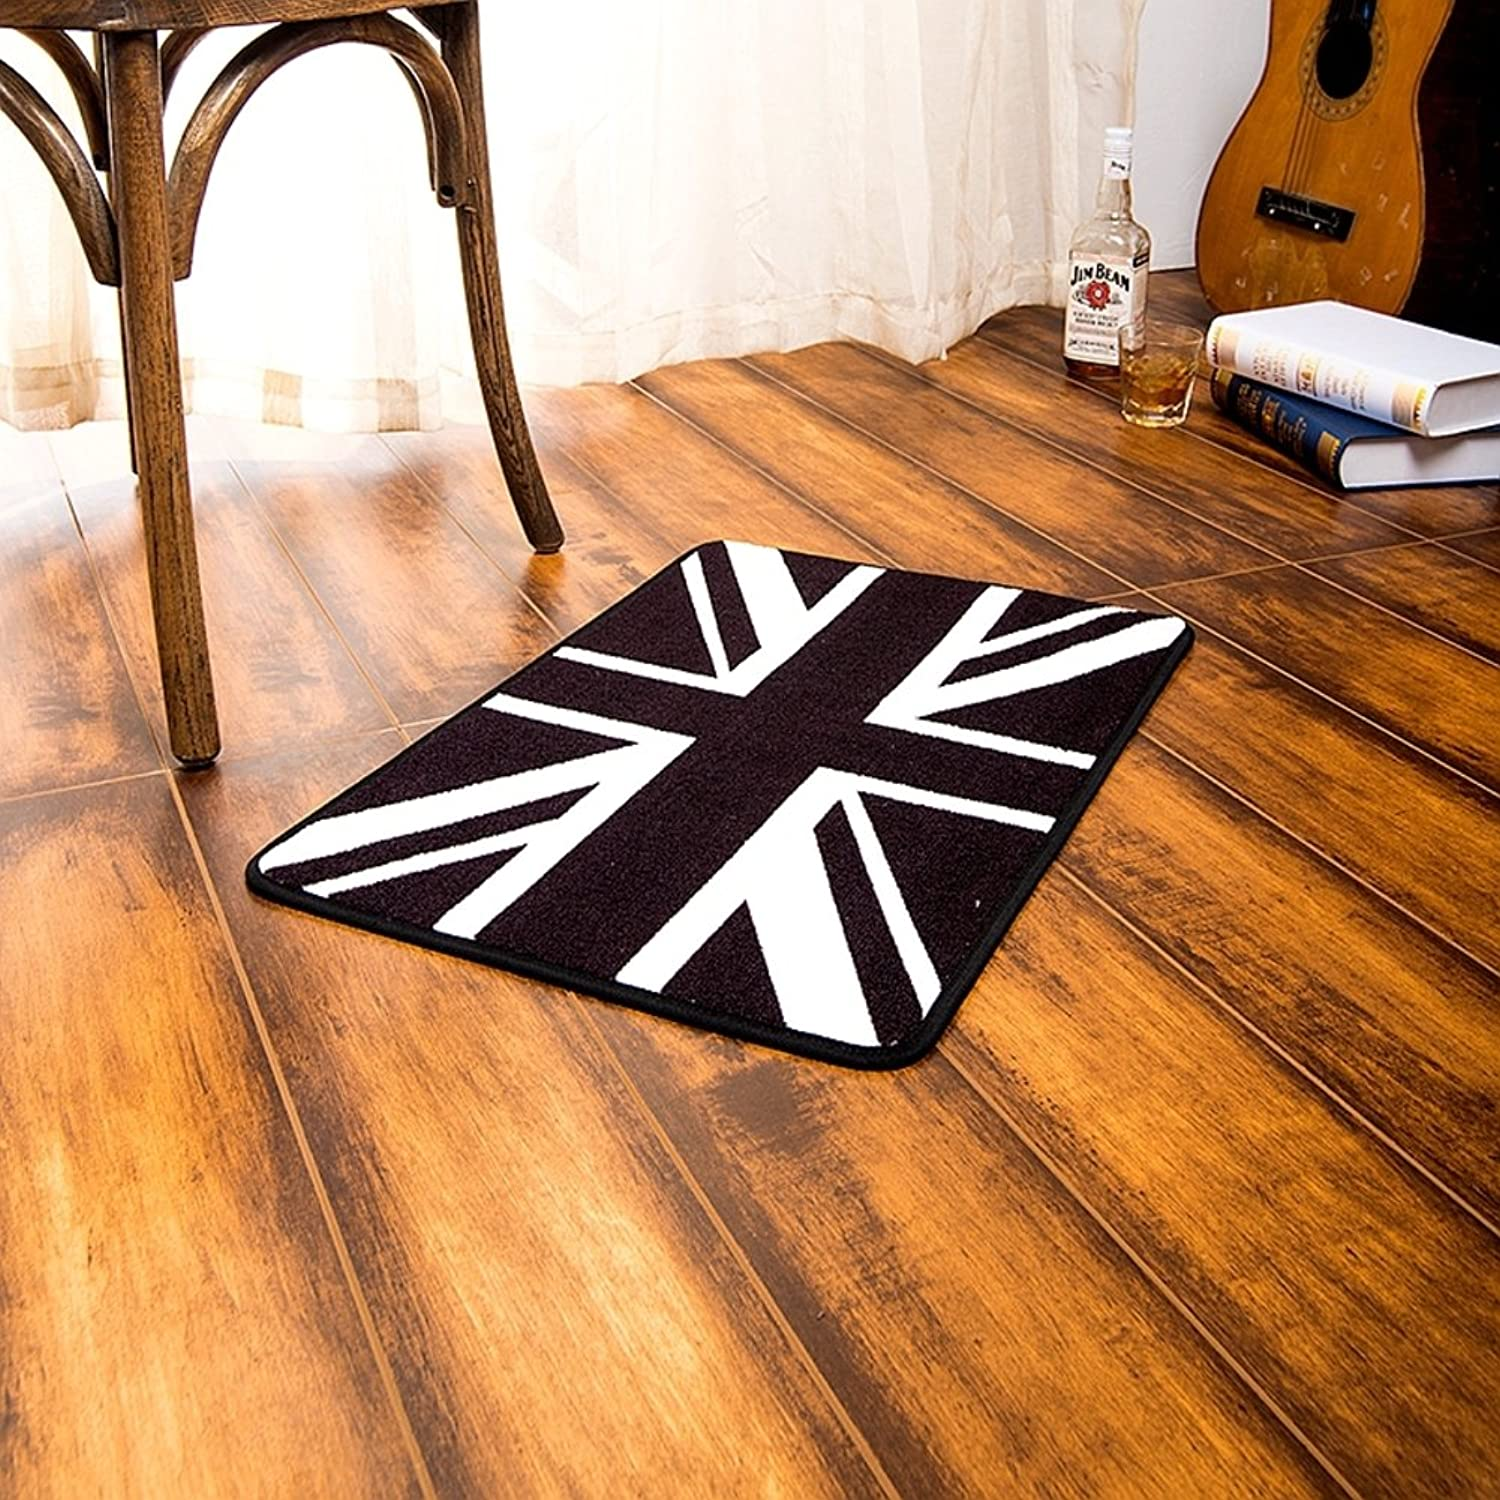 British Wind Pad, Doormat Modern Simple,Black and White Entrance Mat-A 20x31inch